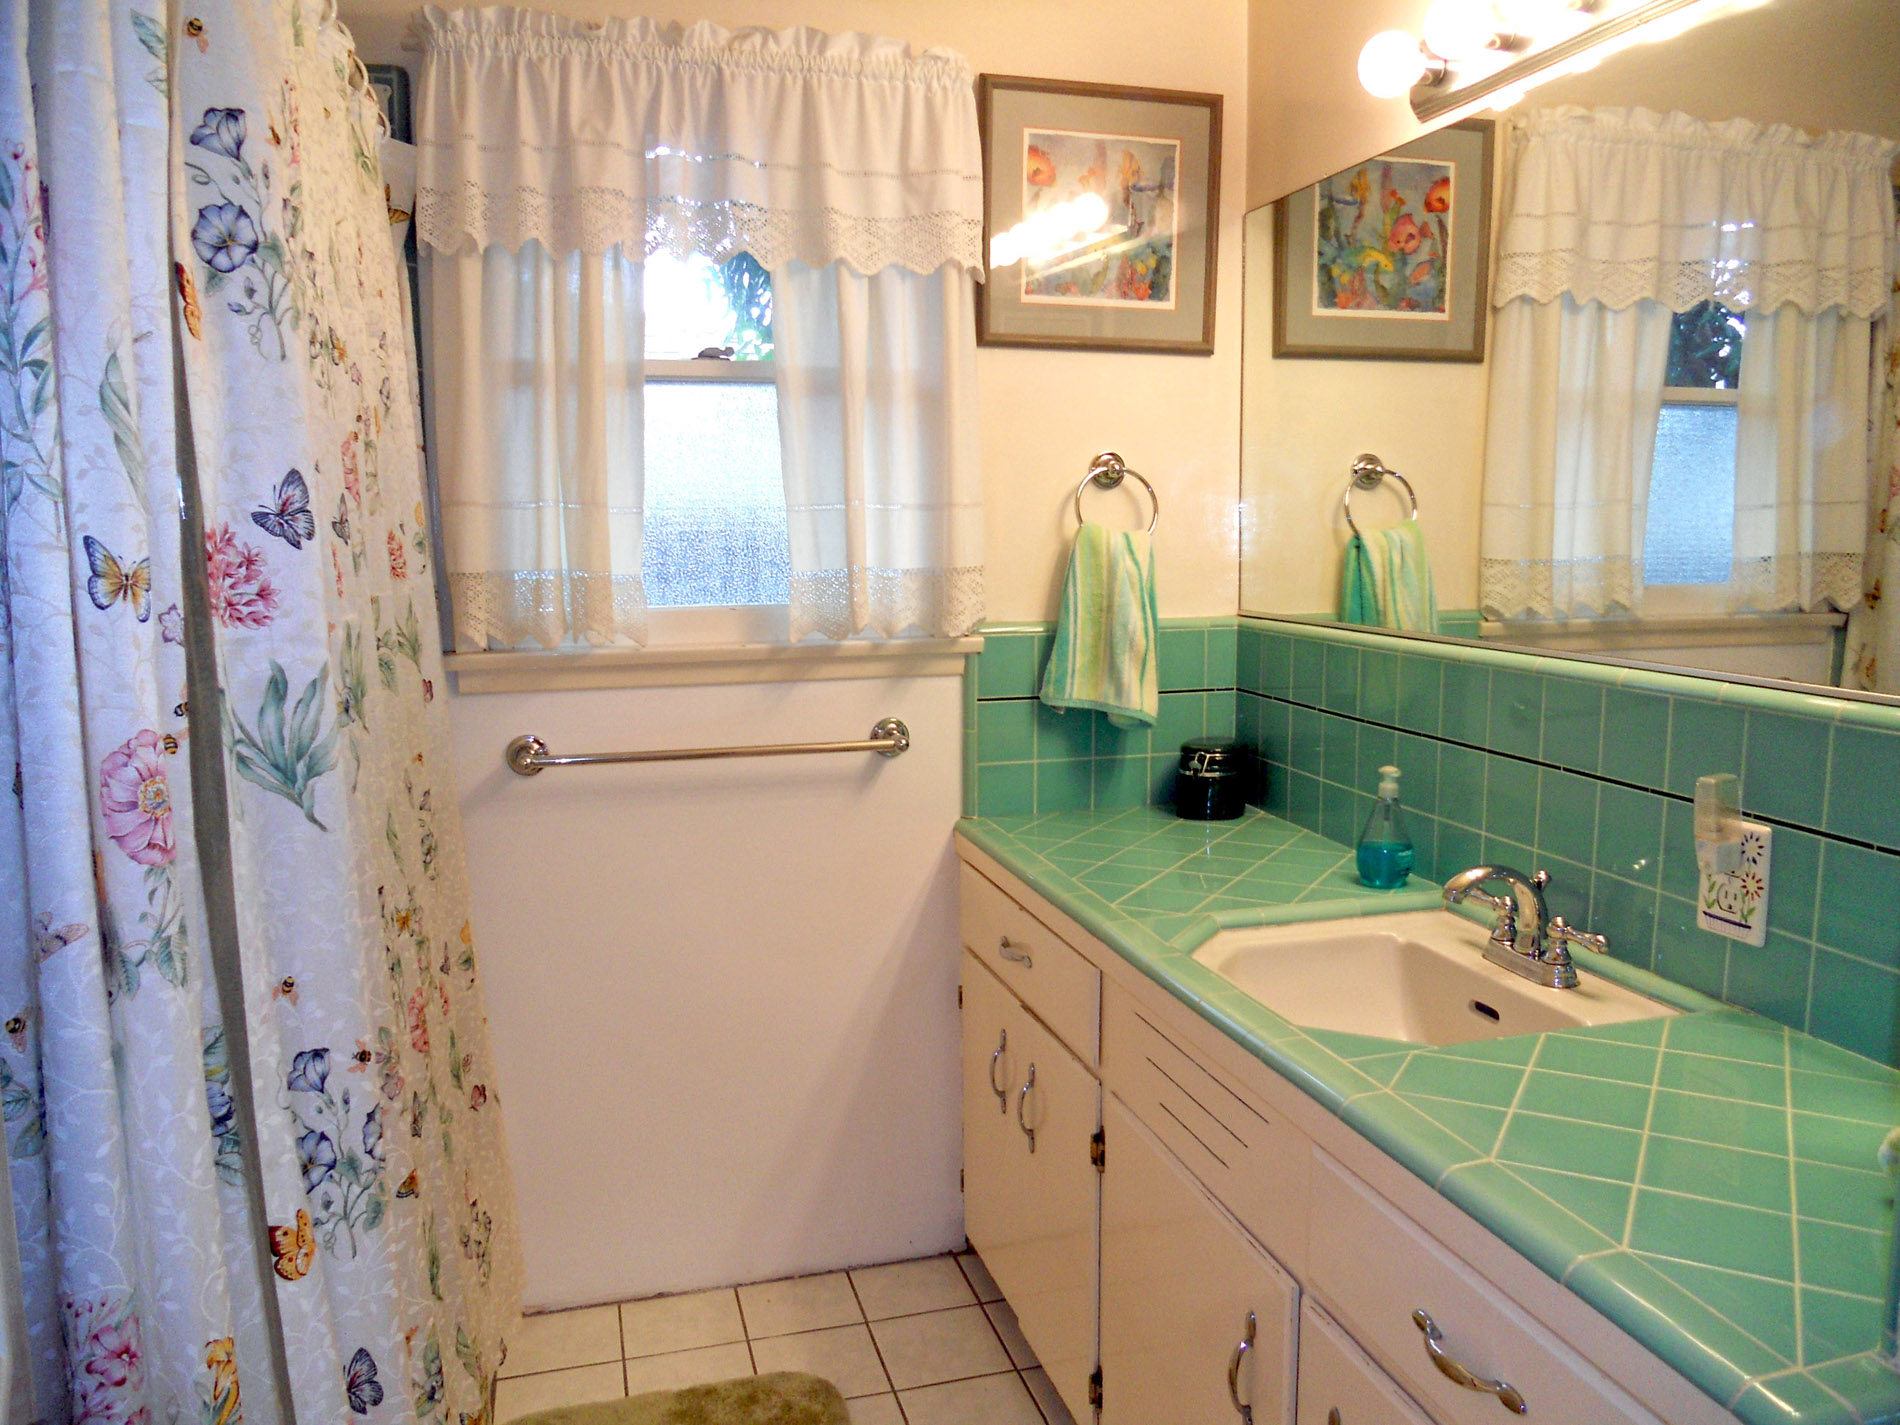 Second bathroom with original counter top tile in like-new condition. The tile in the tub/shower is like-new also!